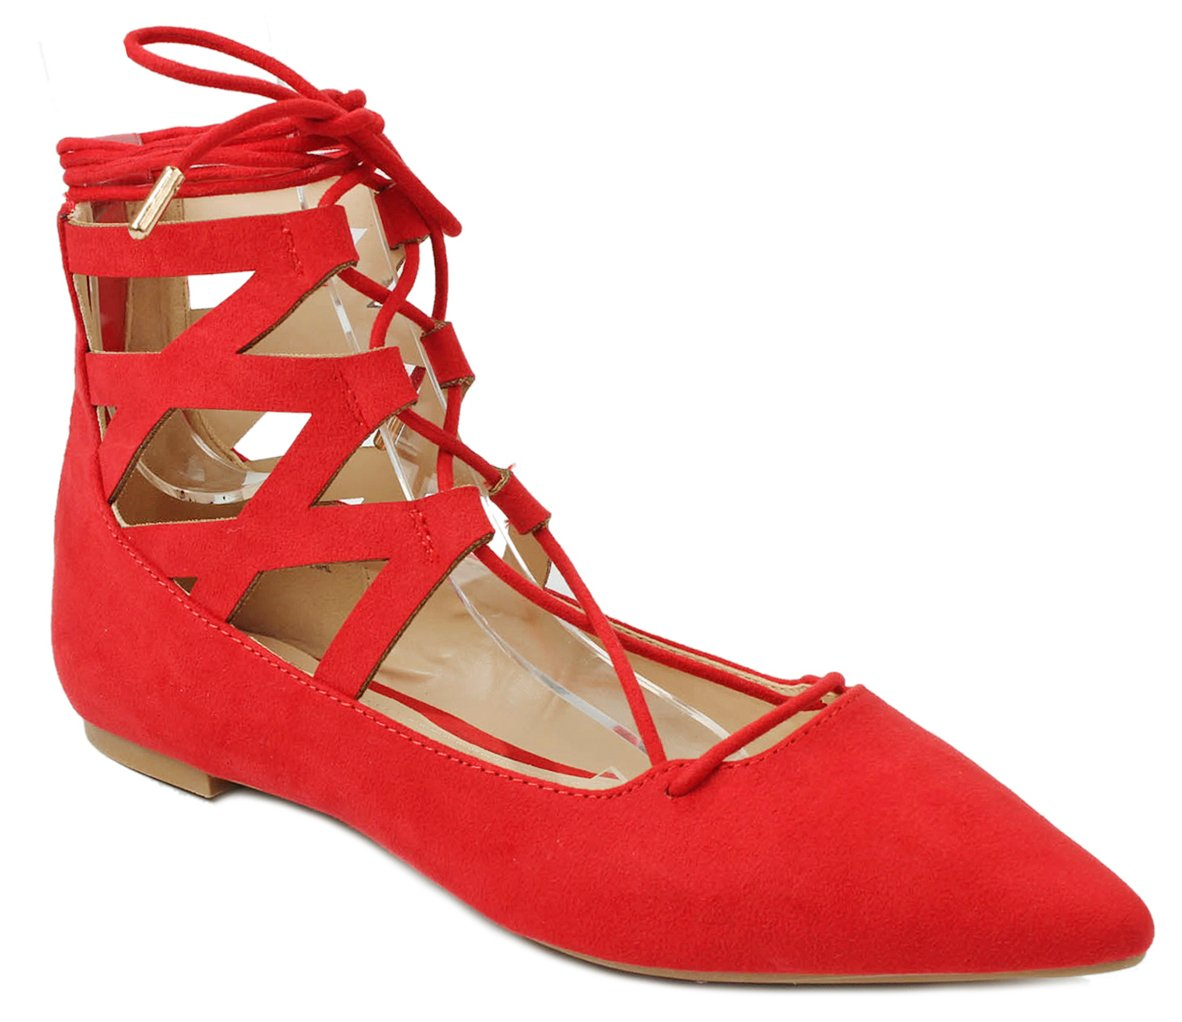 Women Lace Up Cut Out Ankle Cuff Dress Ballet Flats B01DCX0EP2 7 B(M) US|Red Suede